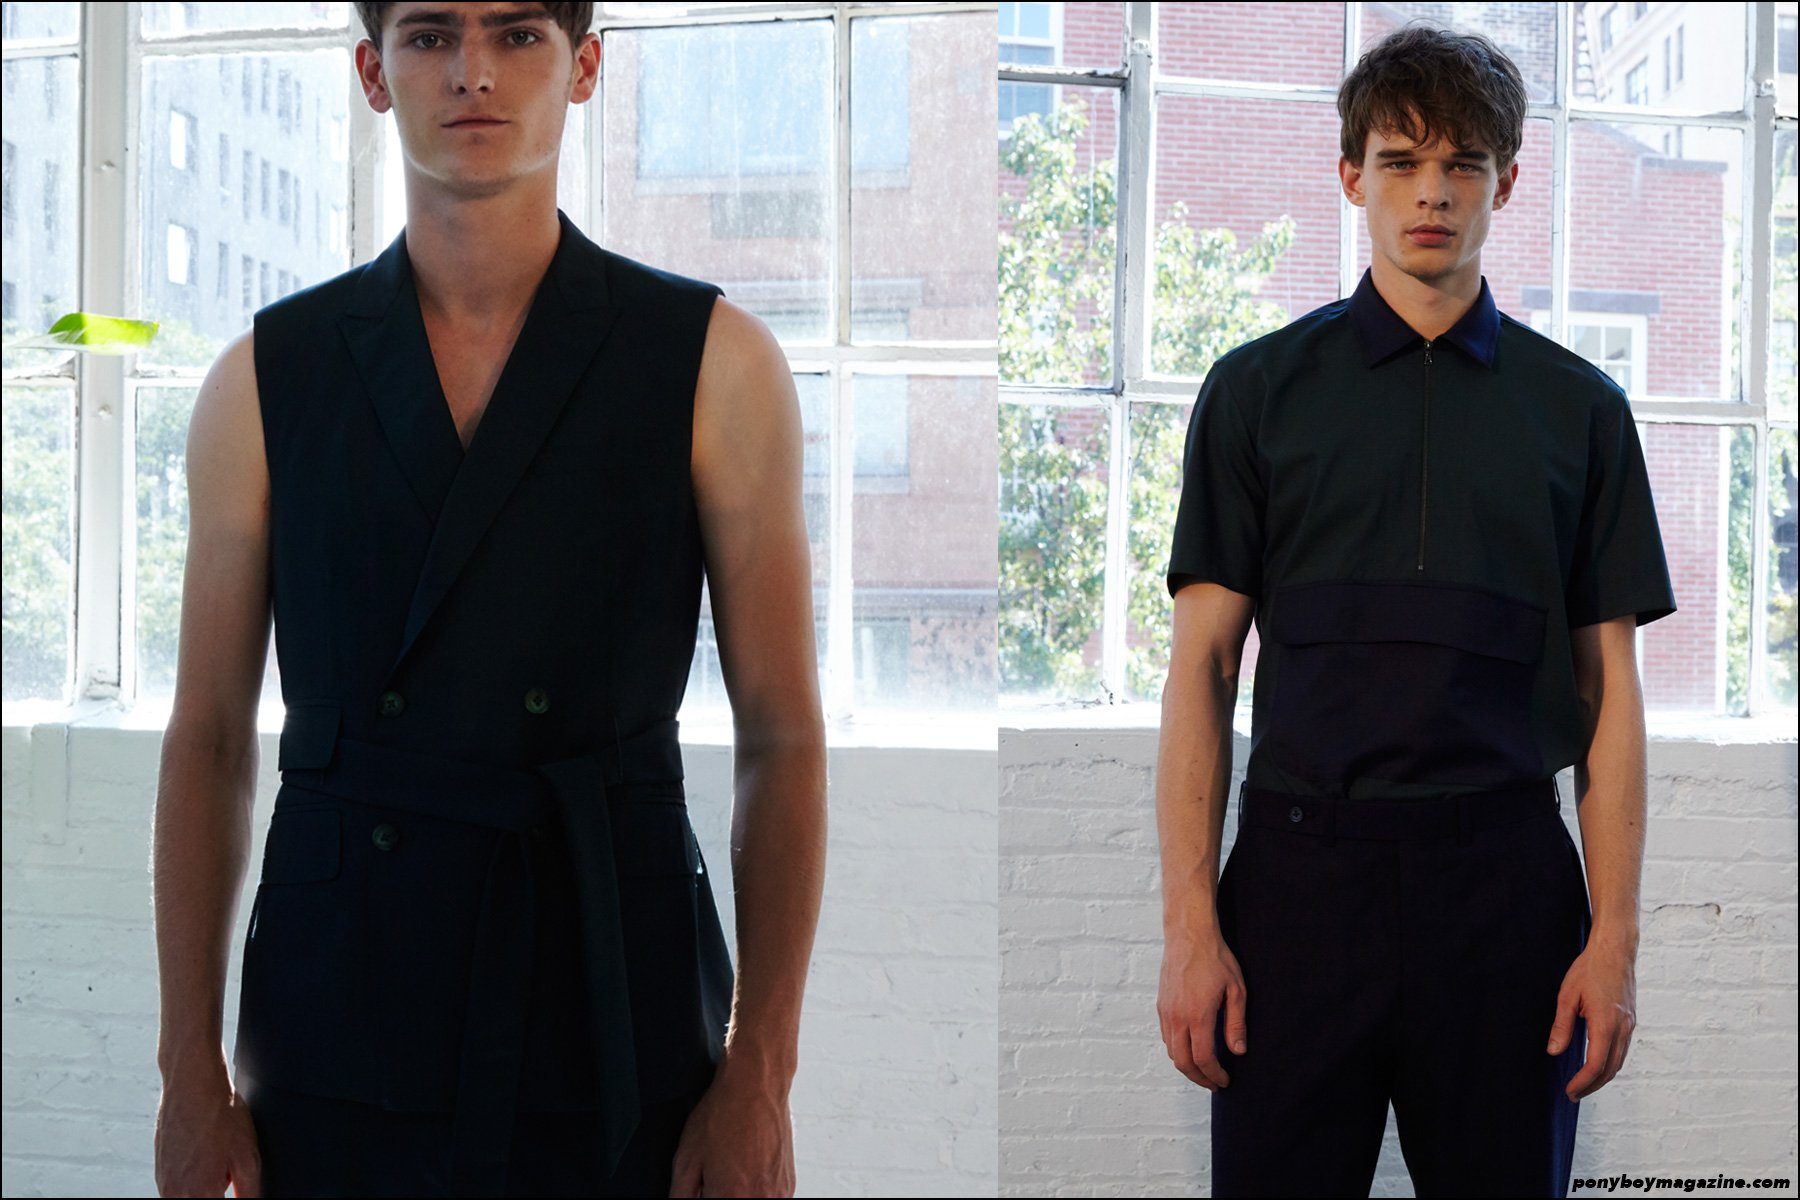 Male models Alexander Beck and Andre Bona photographed at the Carlos Campos S/S 2016 menswear presentation at Industria Studios New York. Photographs by Alexander Thompson for Ponyboy magazine NY.